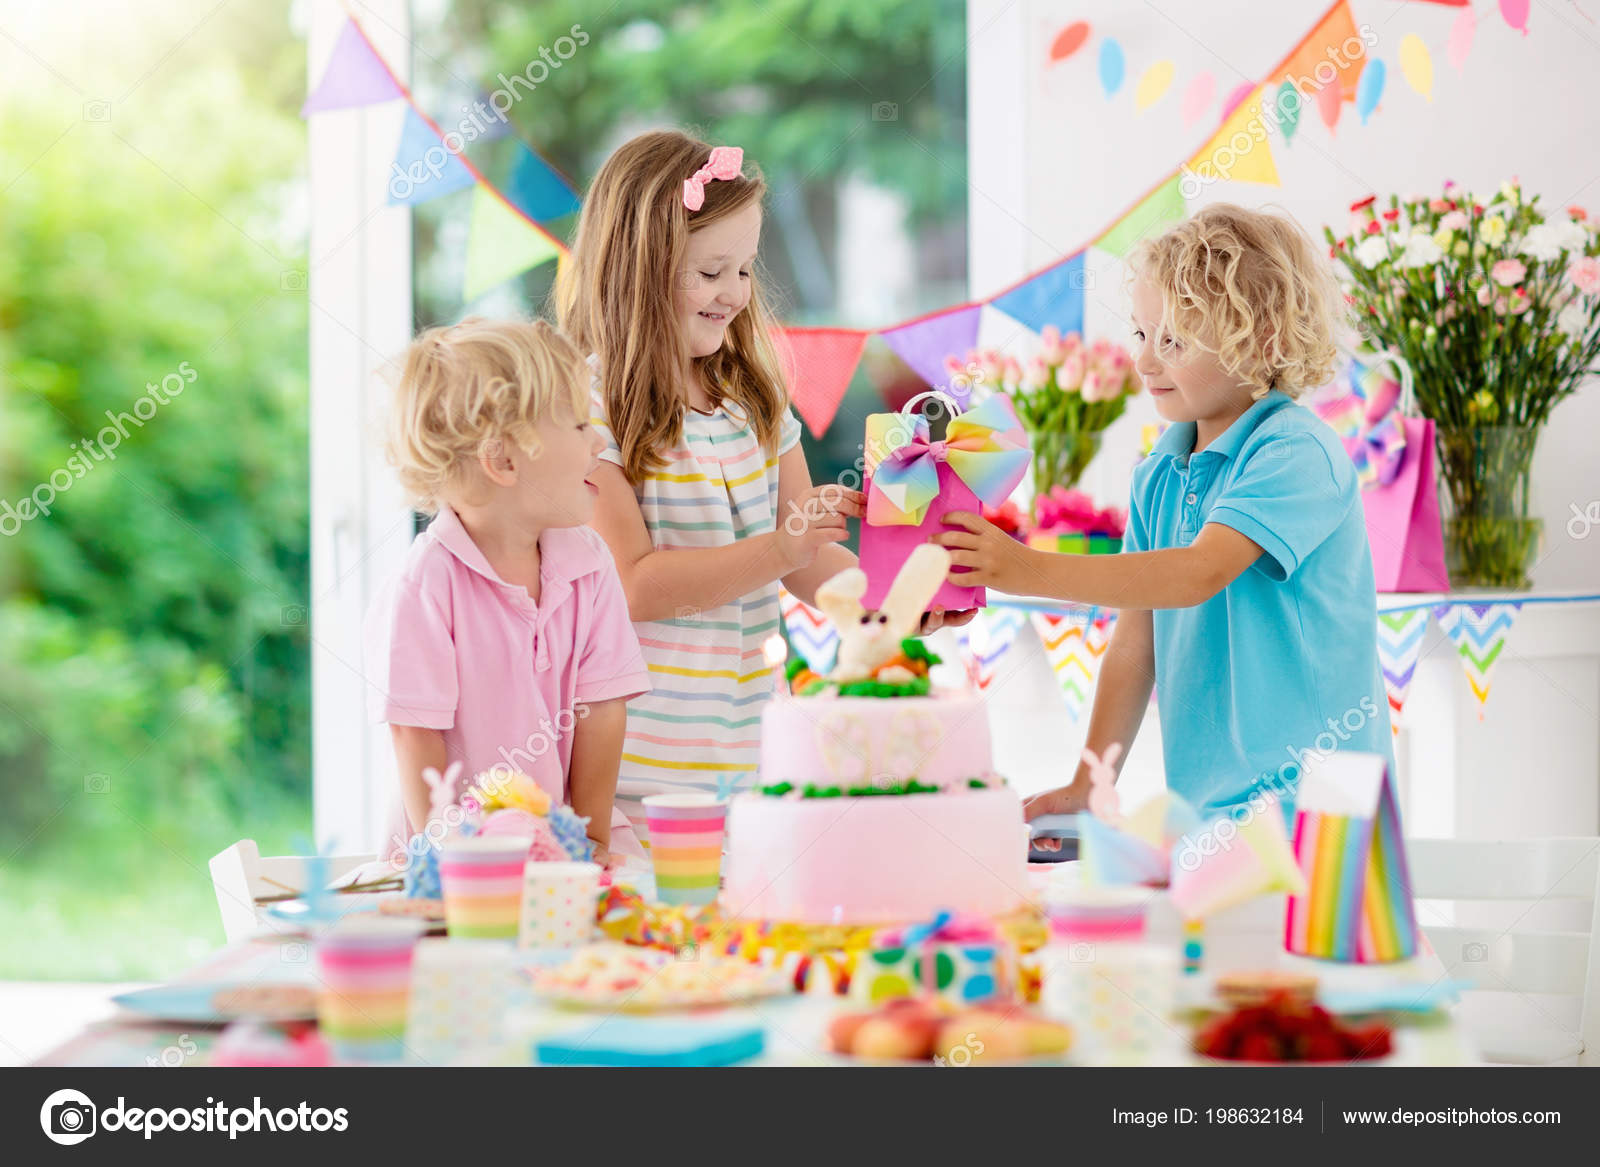 Kids Birthday Party Children Blow Out Candles Pink Bunny Cake Stock Photo Image By C Famveldman 198632184